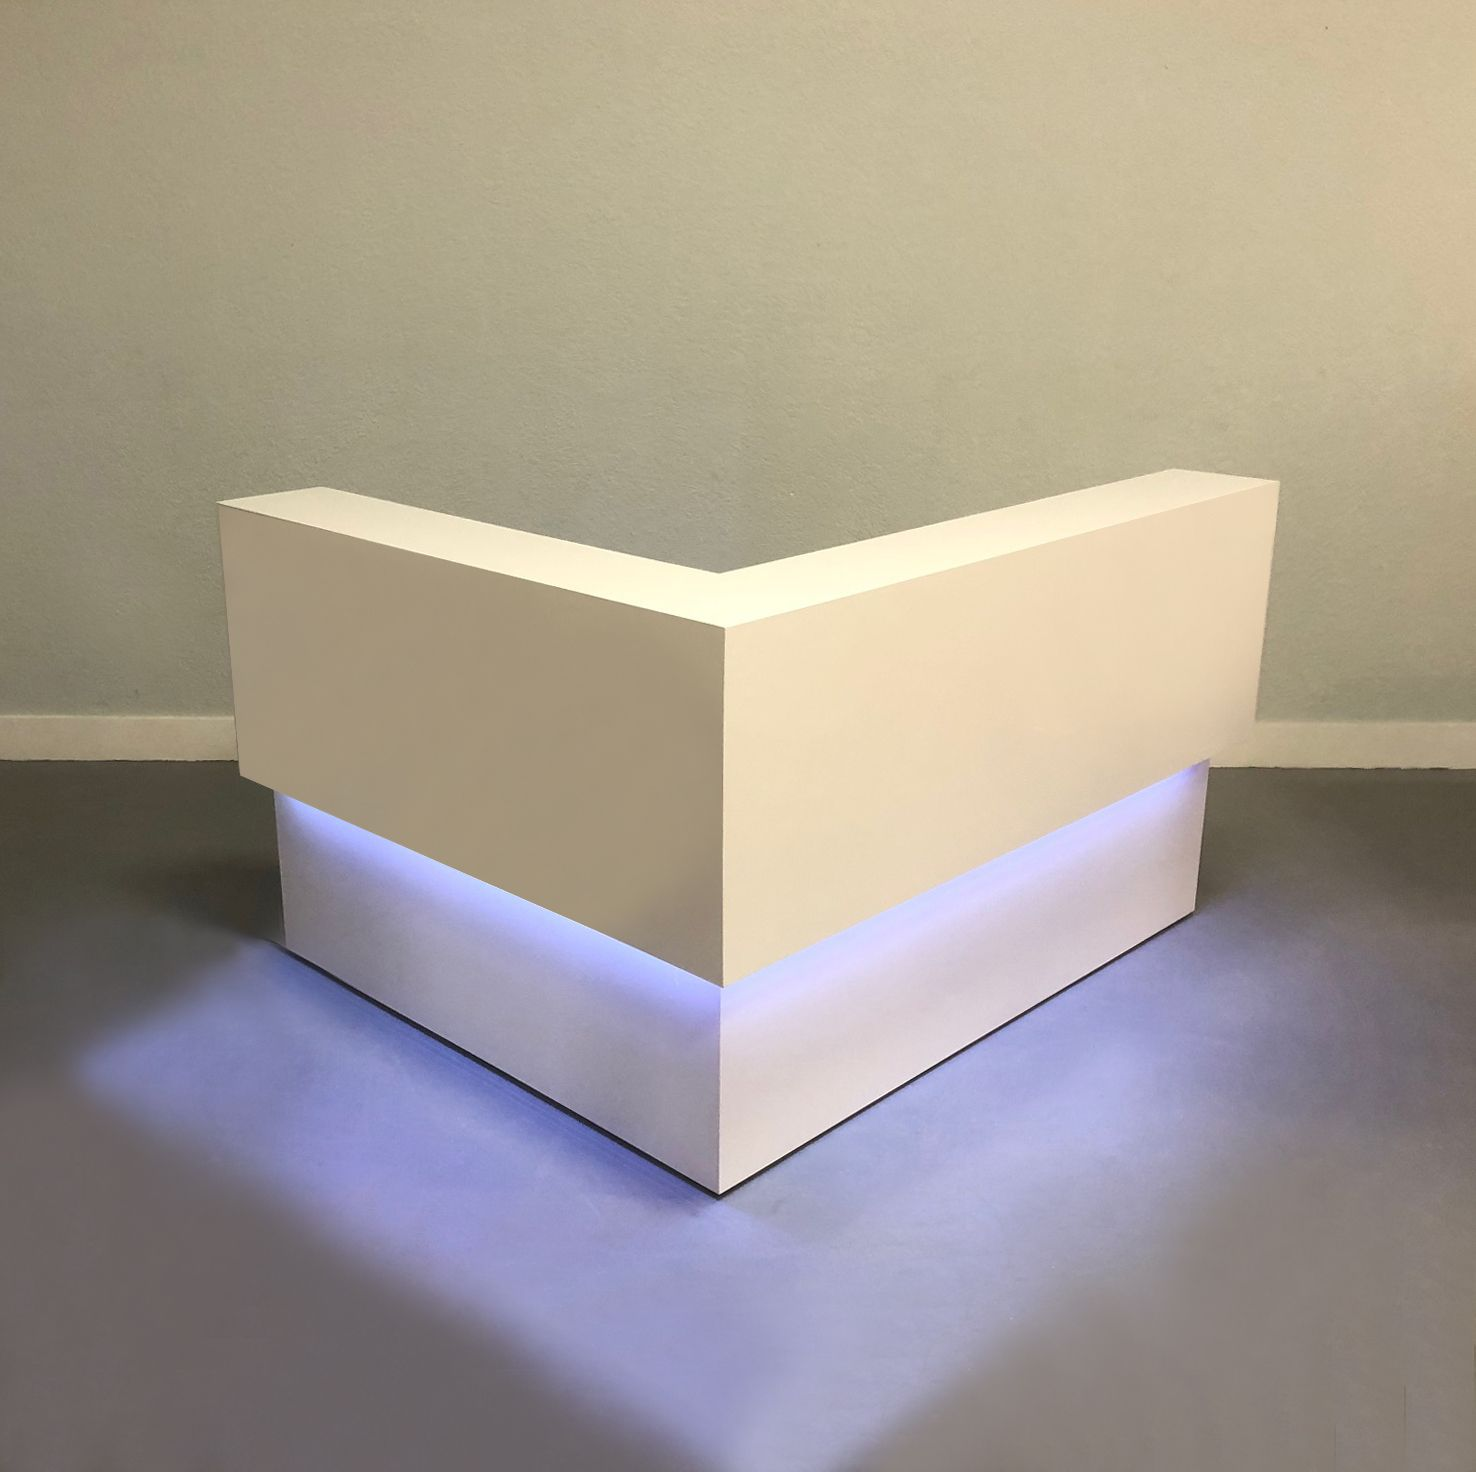 L Shape Custom Made Reception Desk In White Gloss Laminate And Color Changing Led Reception Desk Modern Reception Desk White Gloss